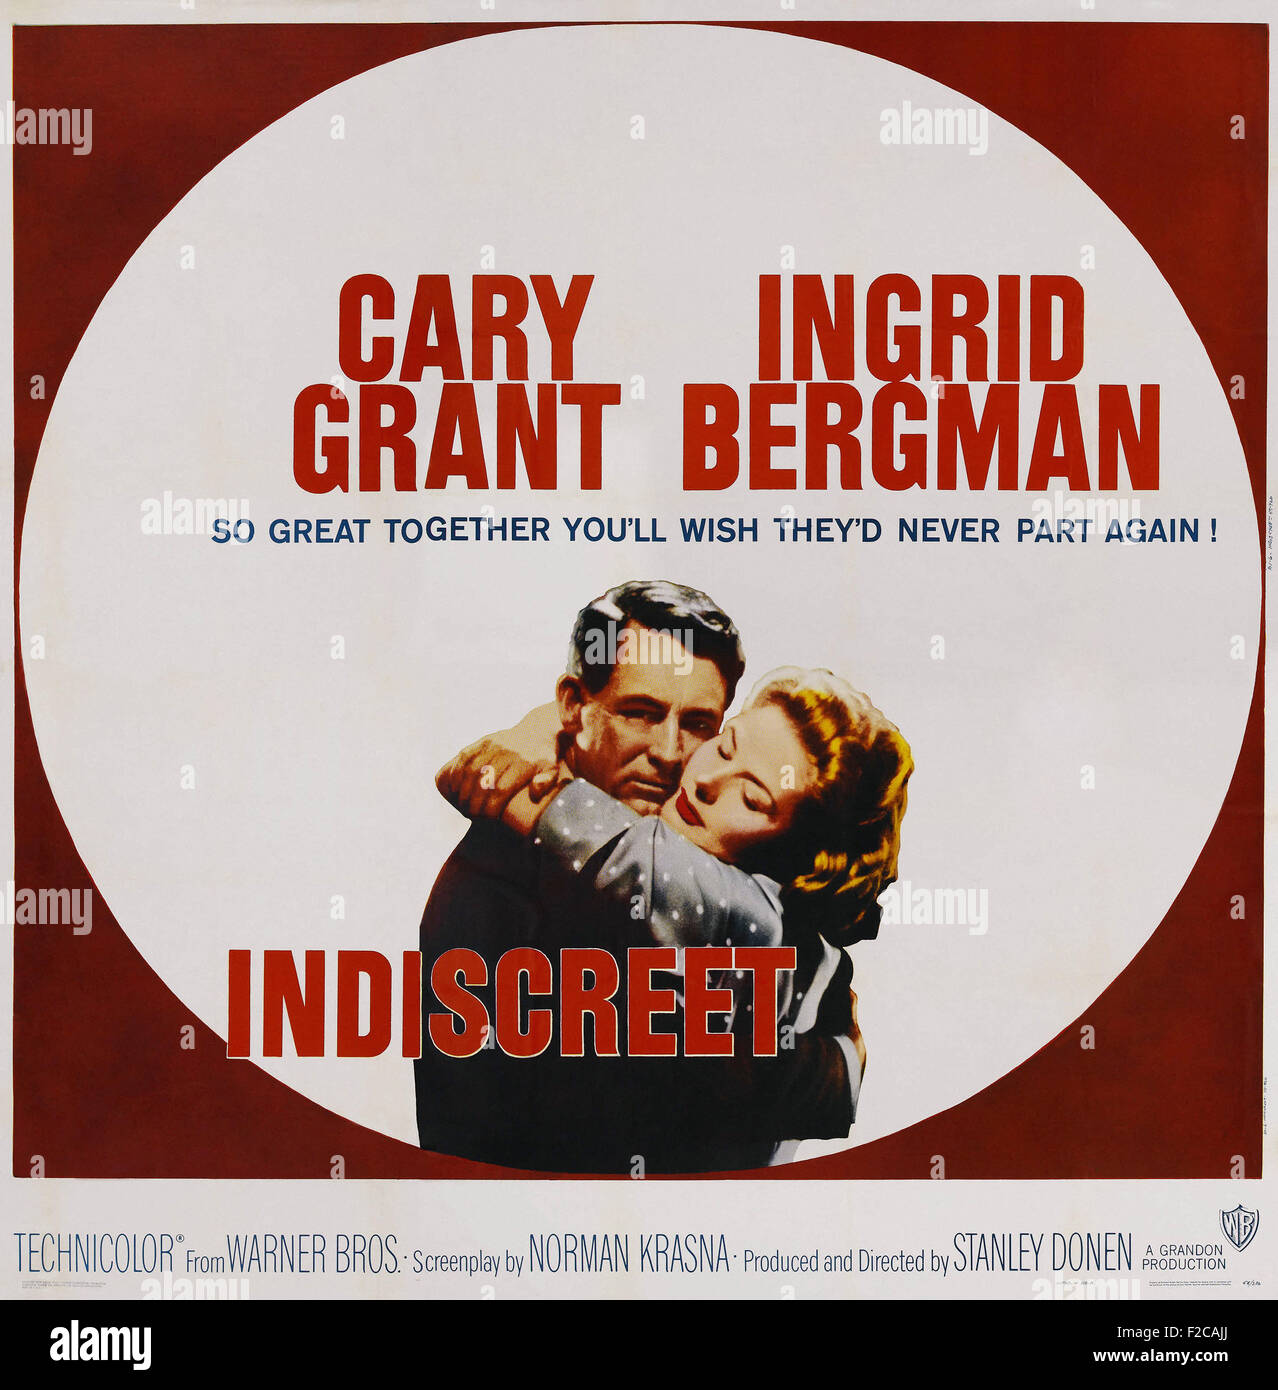 Indiscreet (1958) 02 - Movie Poster - Stock Image